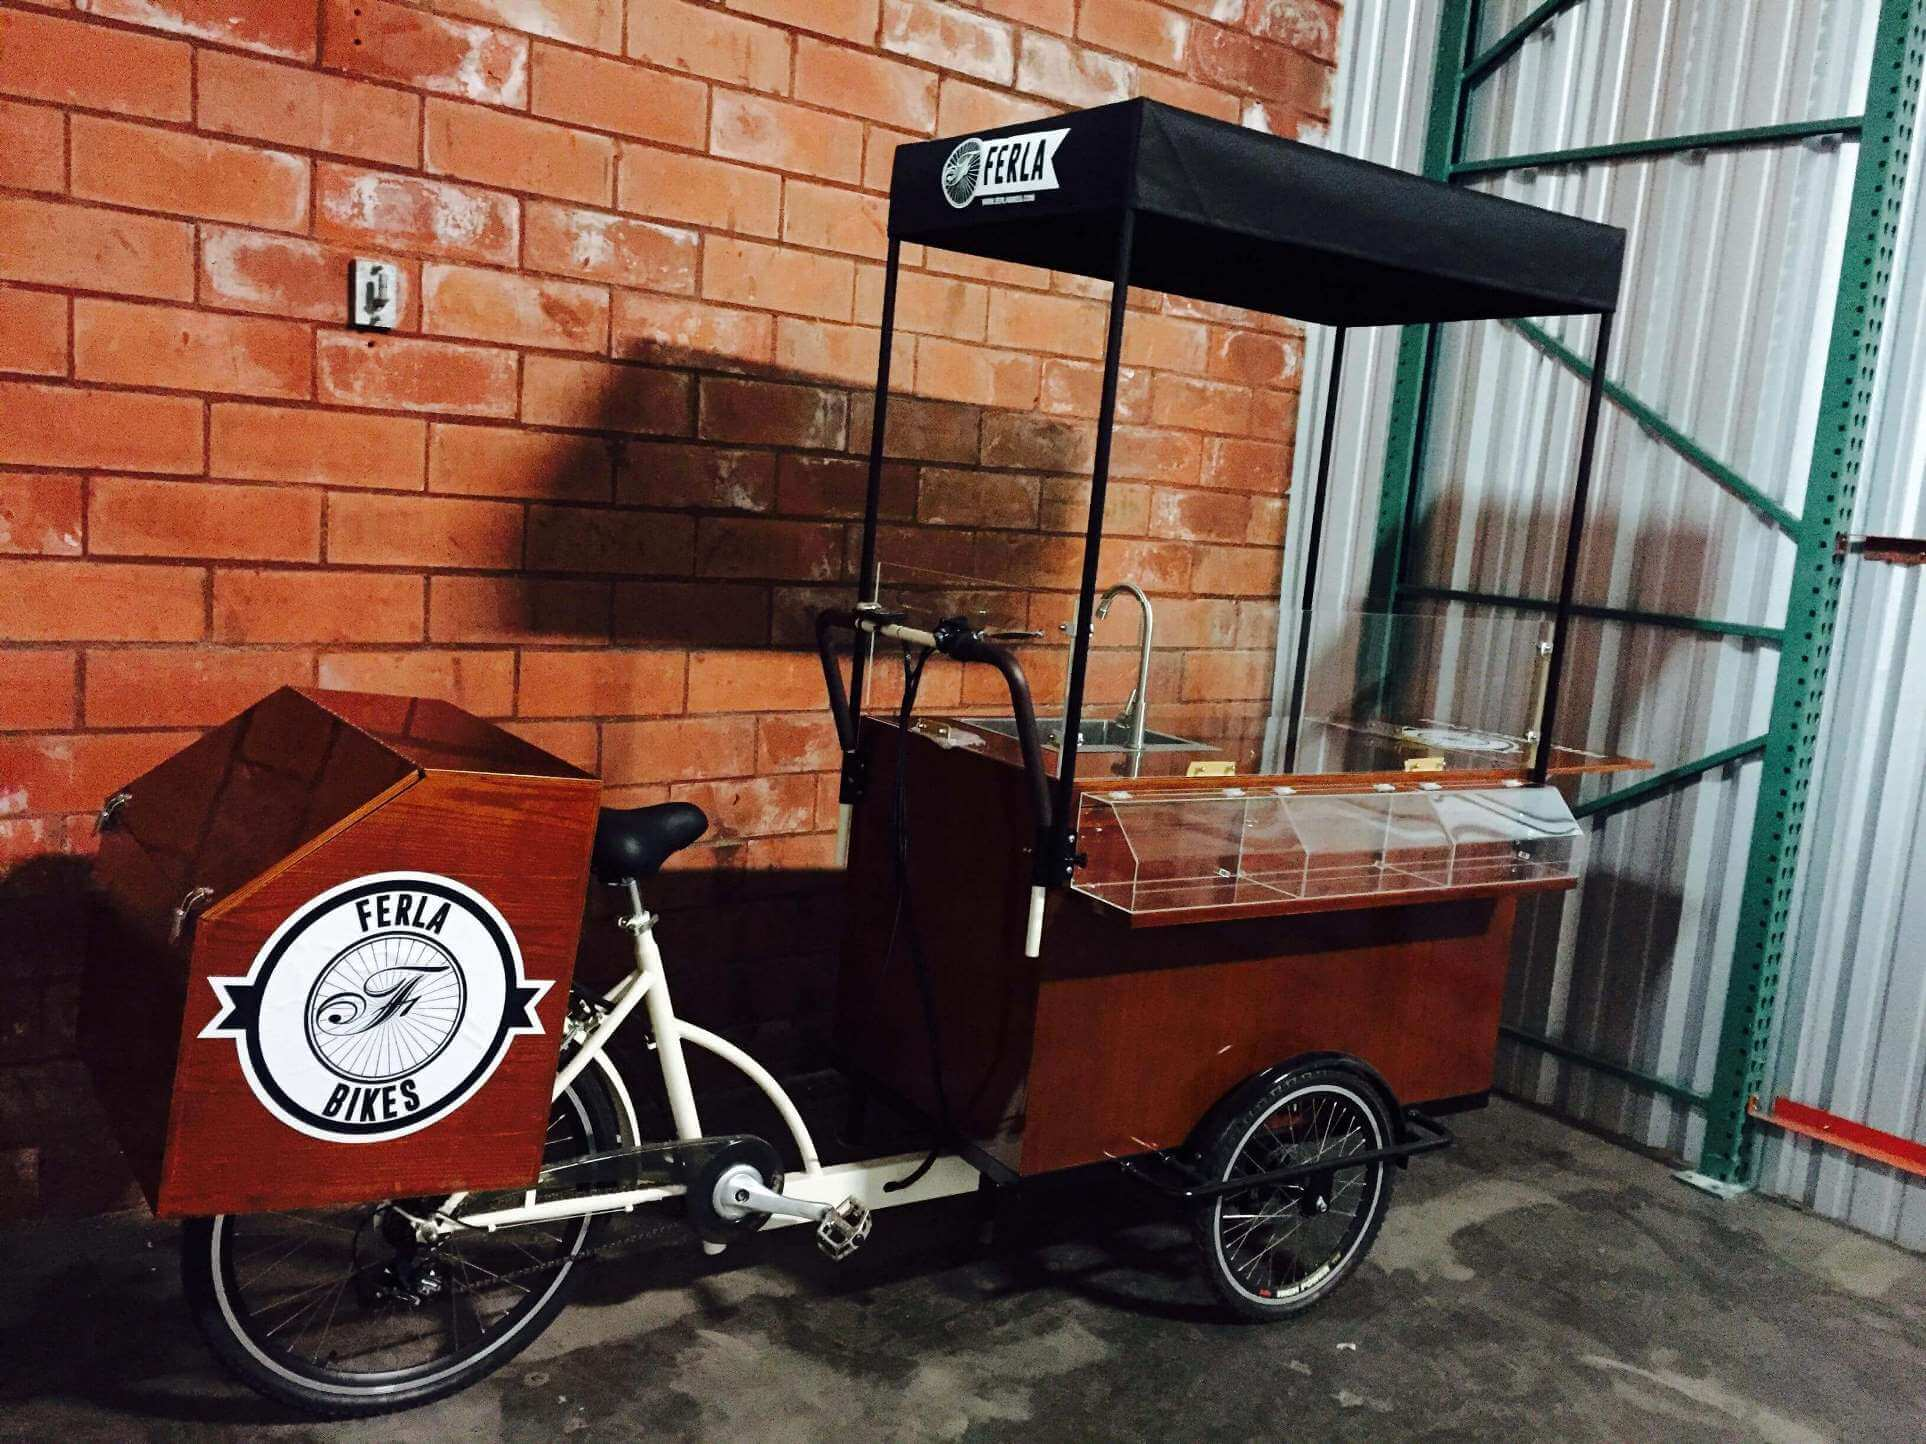 Ferla Bikes Coffee carts that change the reality of mobile coffee bike business. Completely customized tricycles for sale.